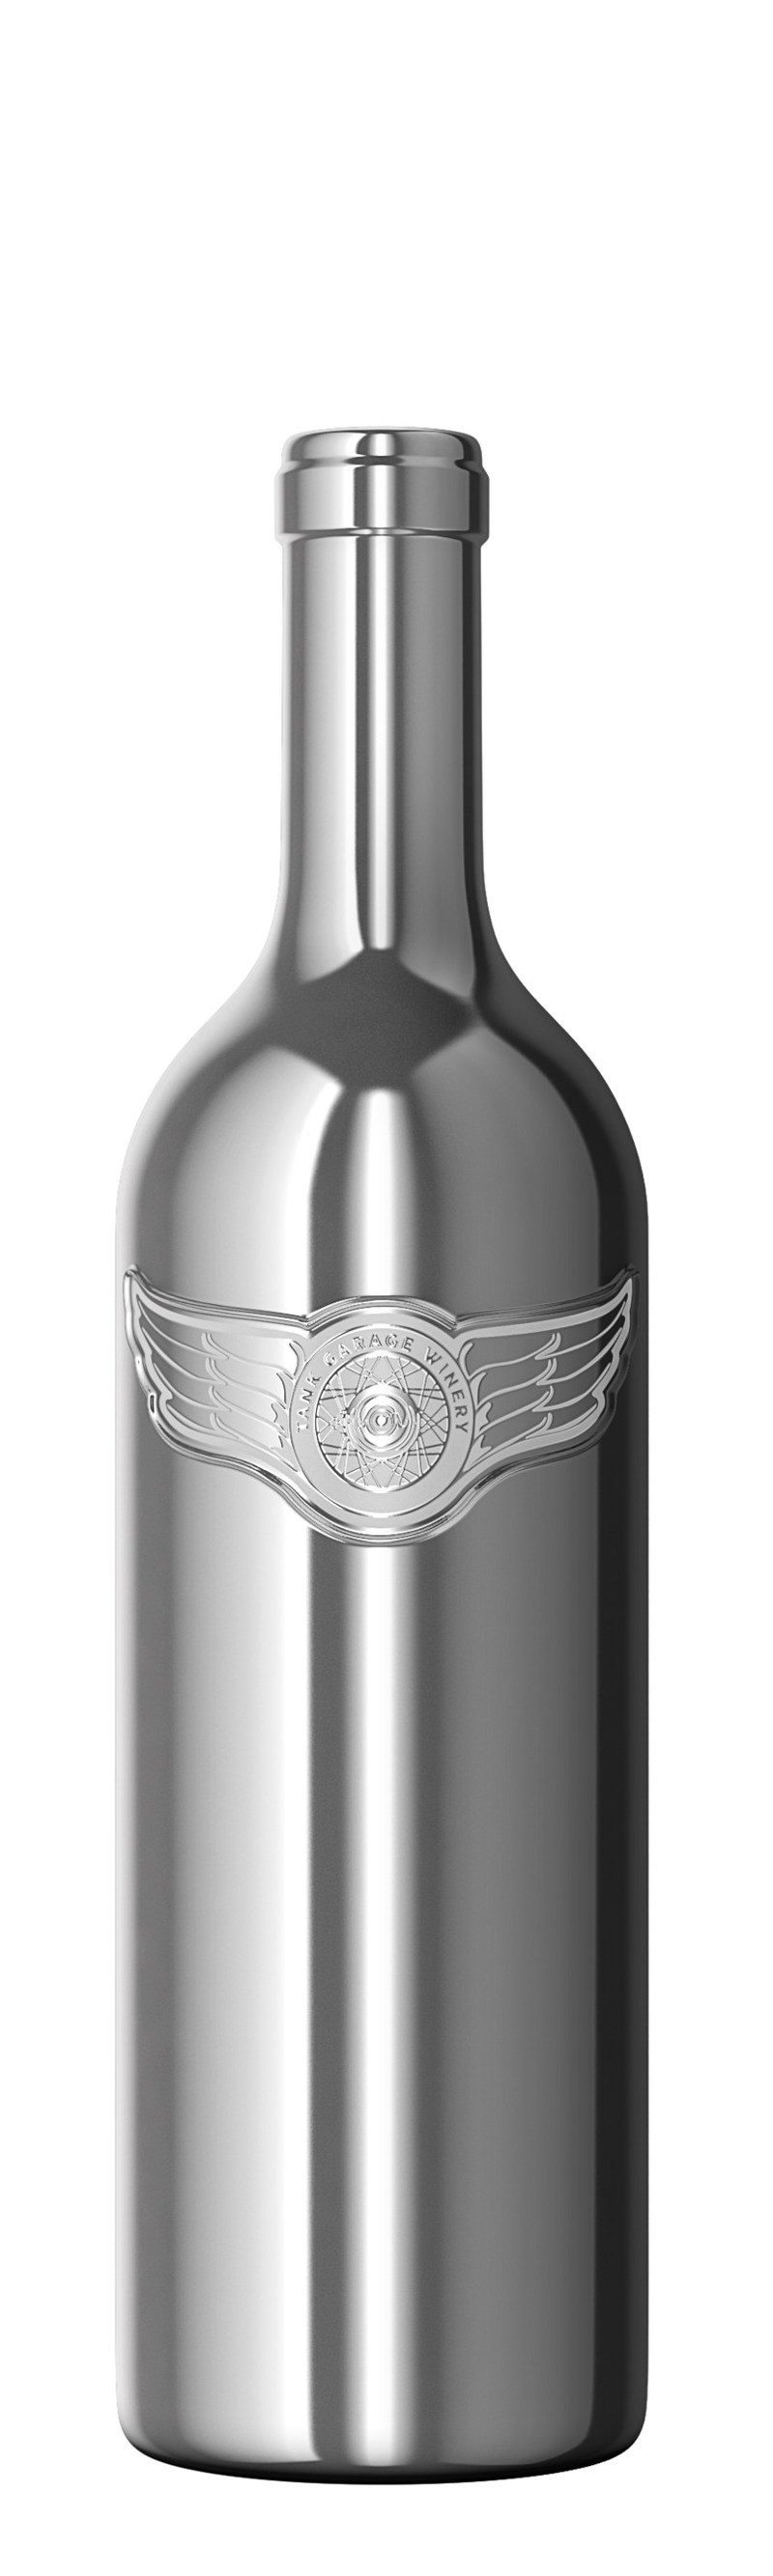 World's First Chromed-Glass Wine Bottle, Tank Garage Winery Chrome Dreams, a Napa Valley Cabernet Sauvignon